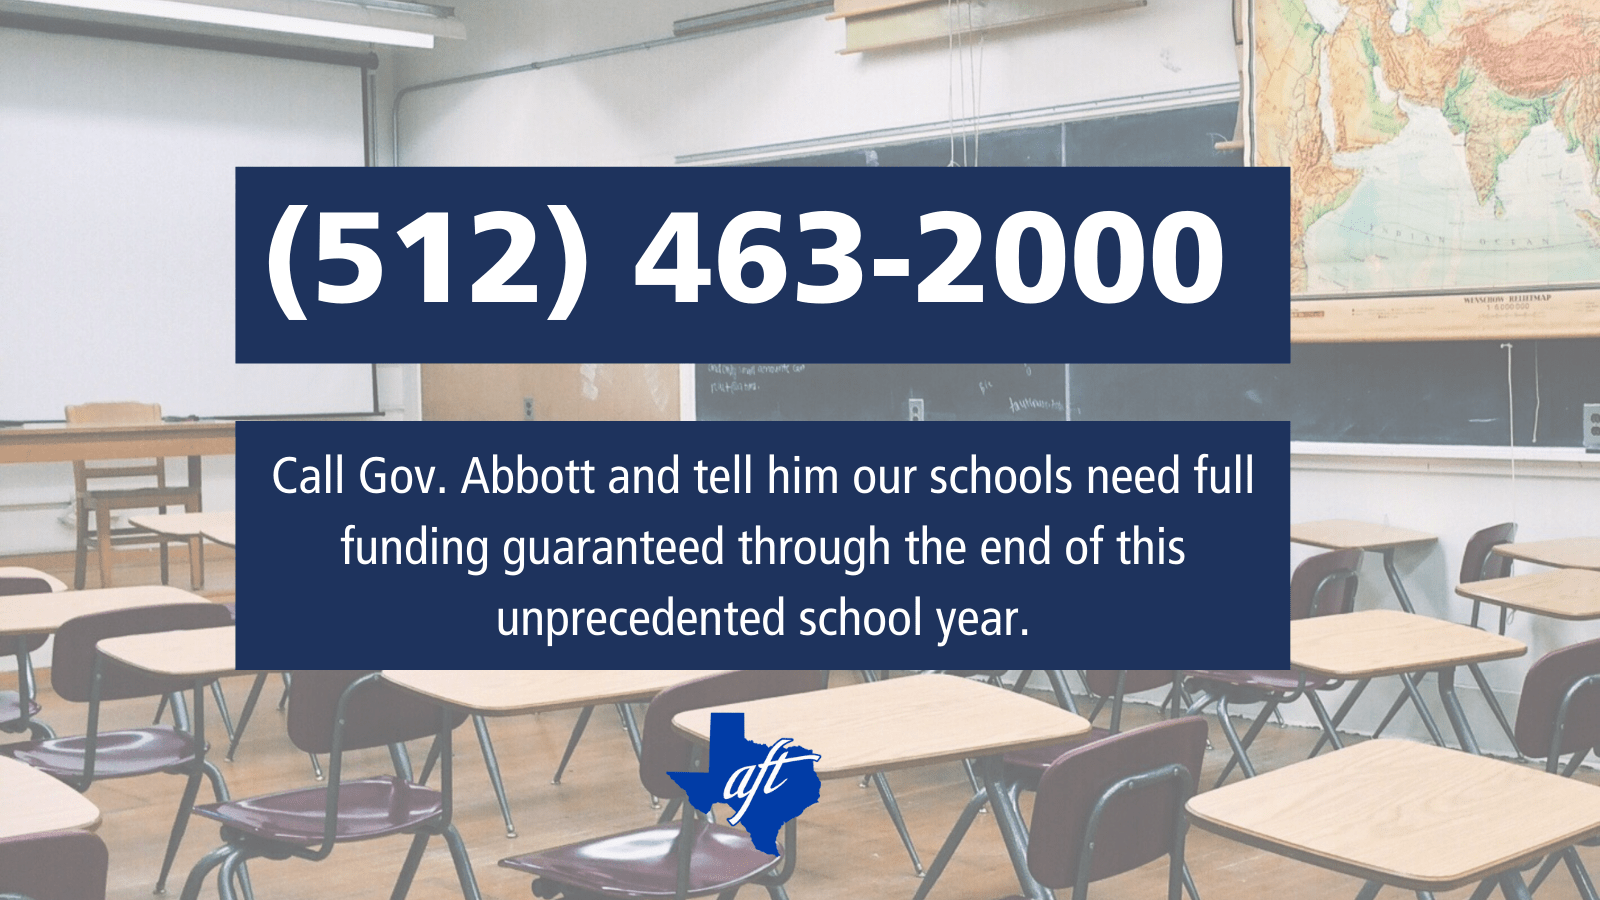 """Text says, """"Call Governor Abbott and tell him our schools need full funding guaranteed through the end of this unprecedented school year."""" Phone number is 512 463 2000."""